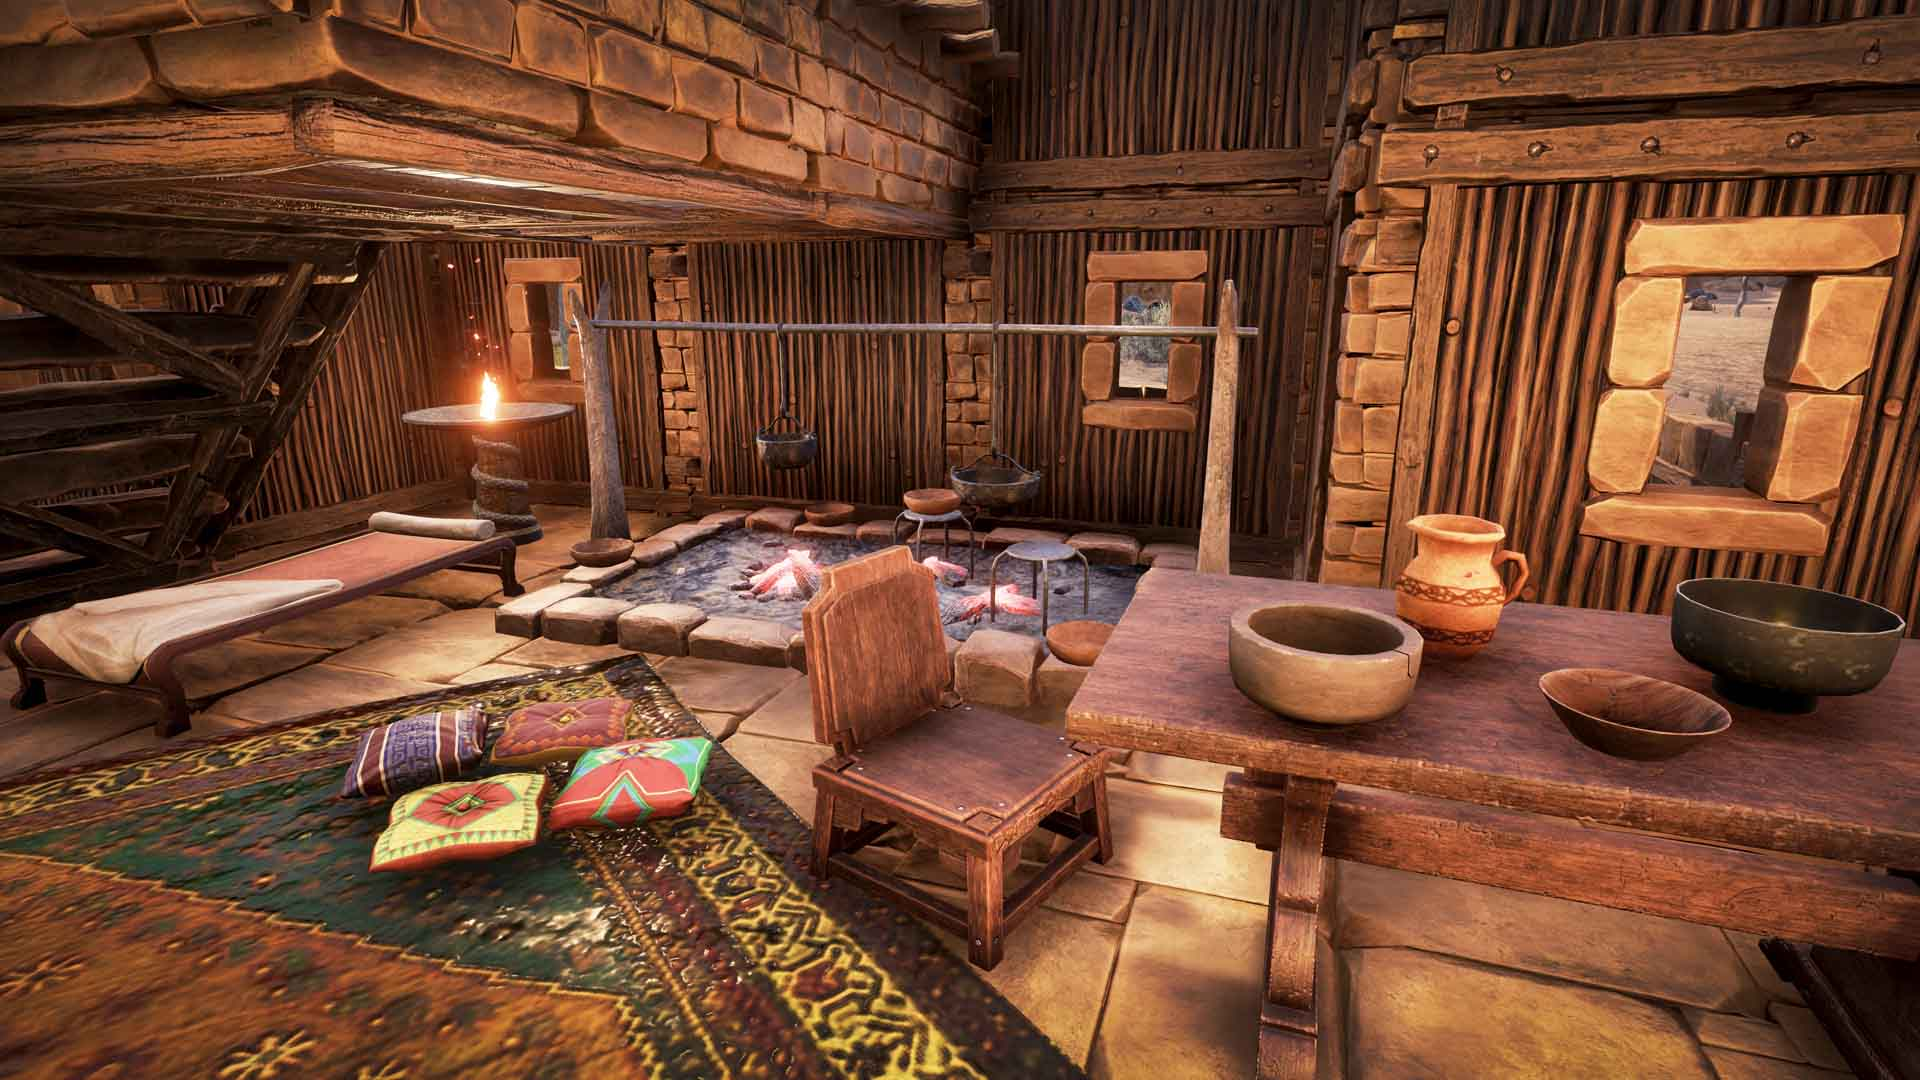 Conan Exiles update 26 indoor